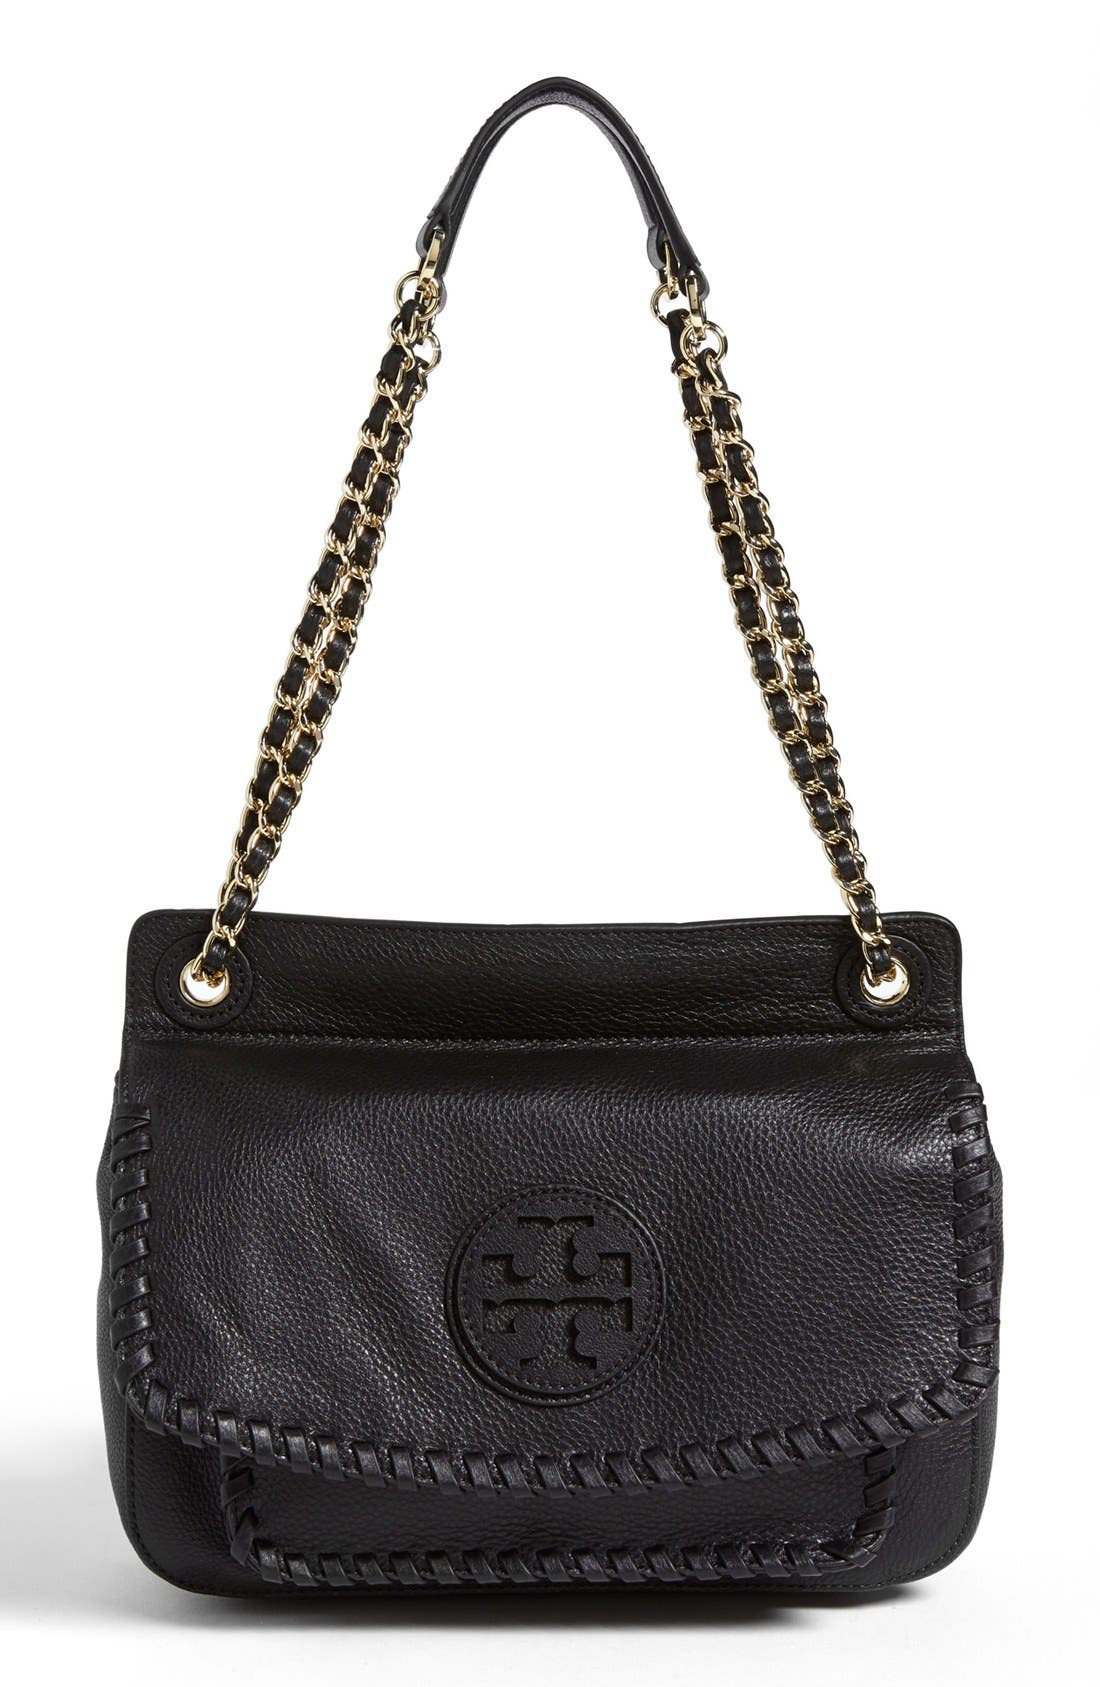 Main Image - Tory Burch 'Small Marion' Shoulder Bag